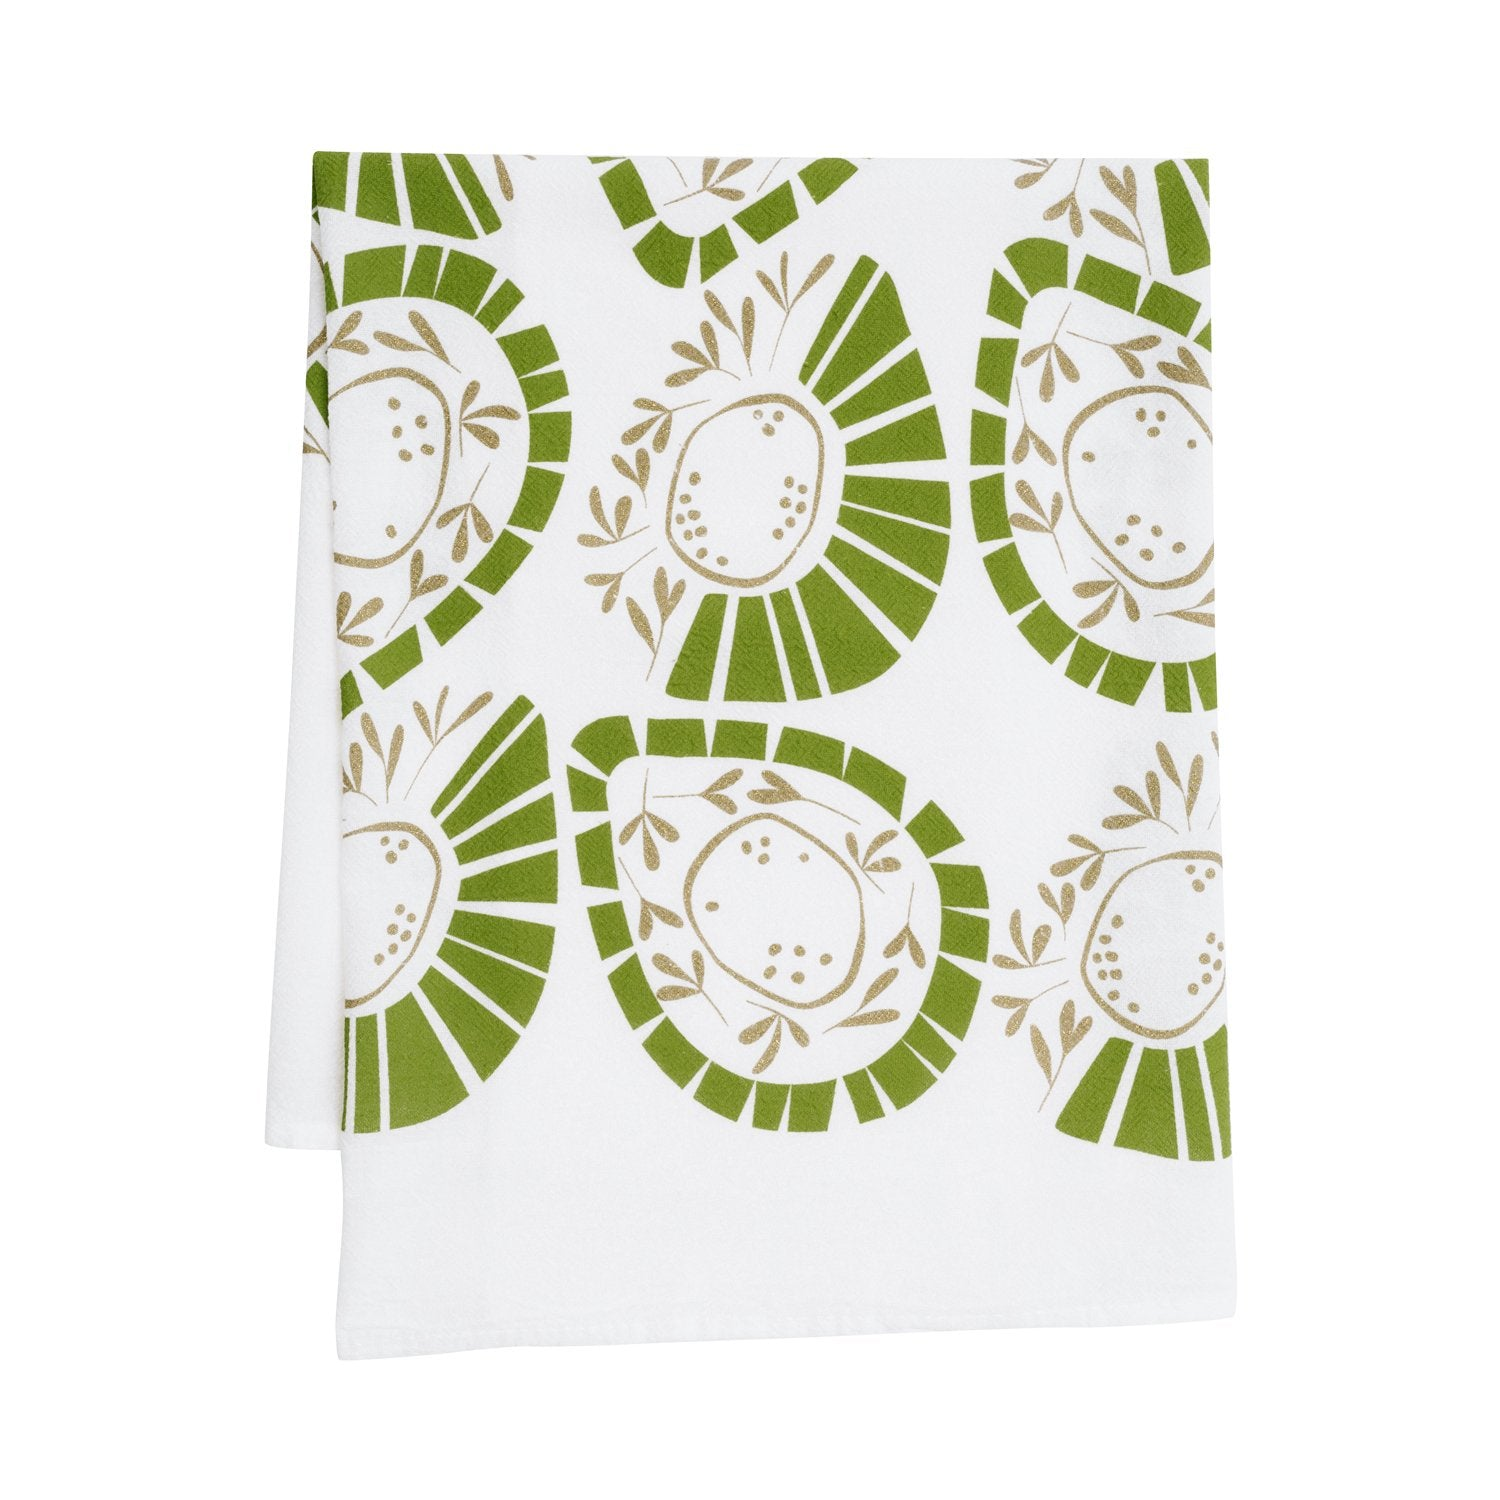 Tea Towel - Avocados